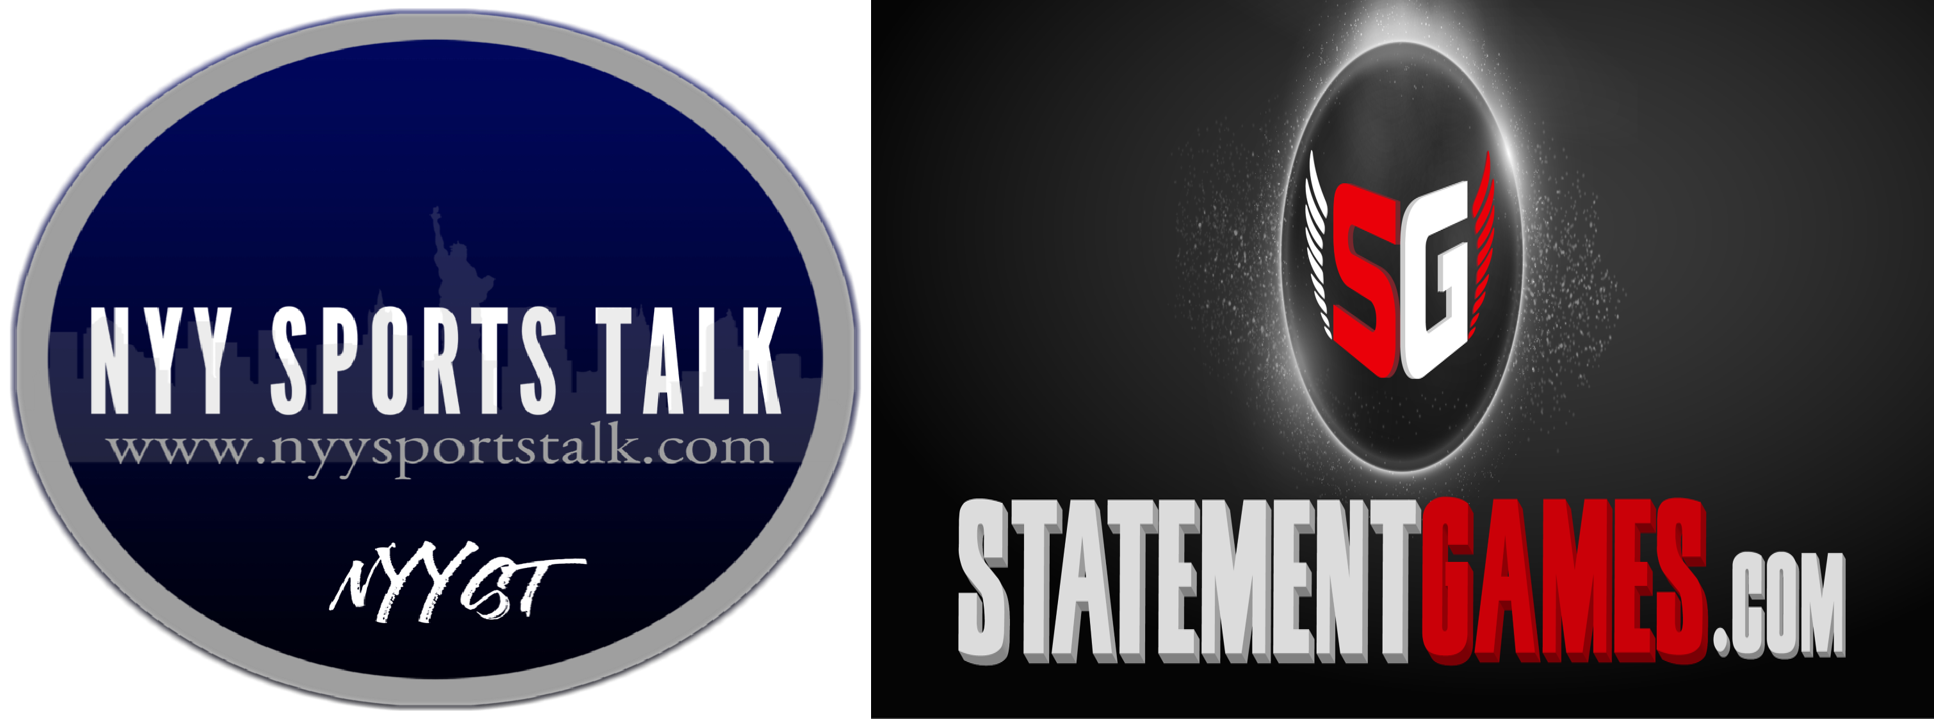 NYY Sports Talk & StatementGames LLC Form Partnership